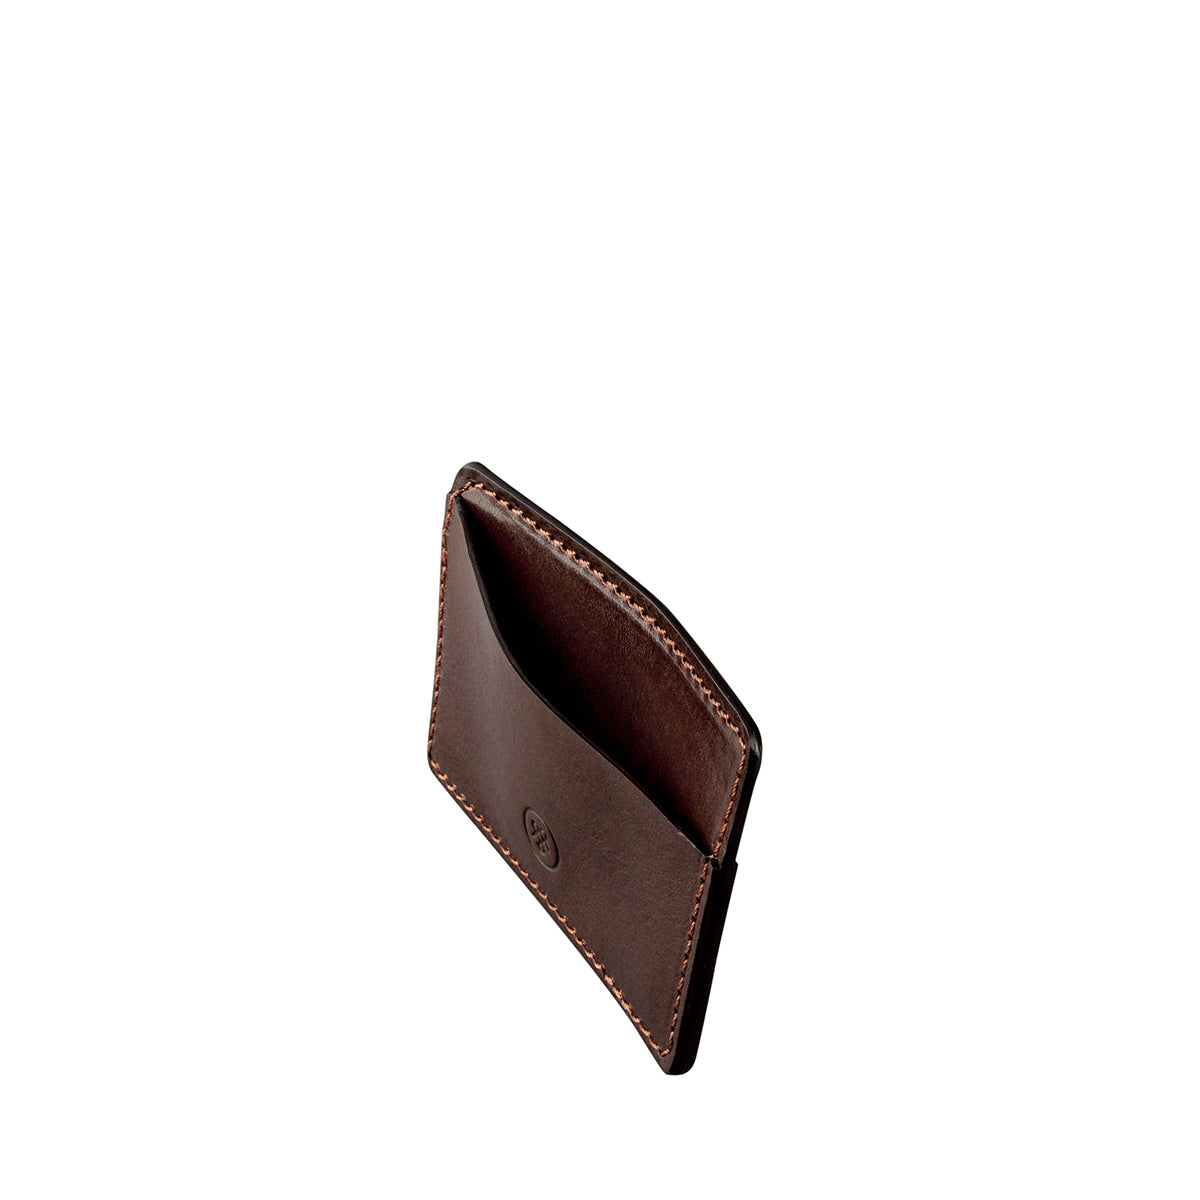 Image 5 of the 'Max' Luxury Brown Leather Card Case